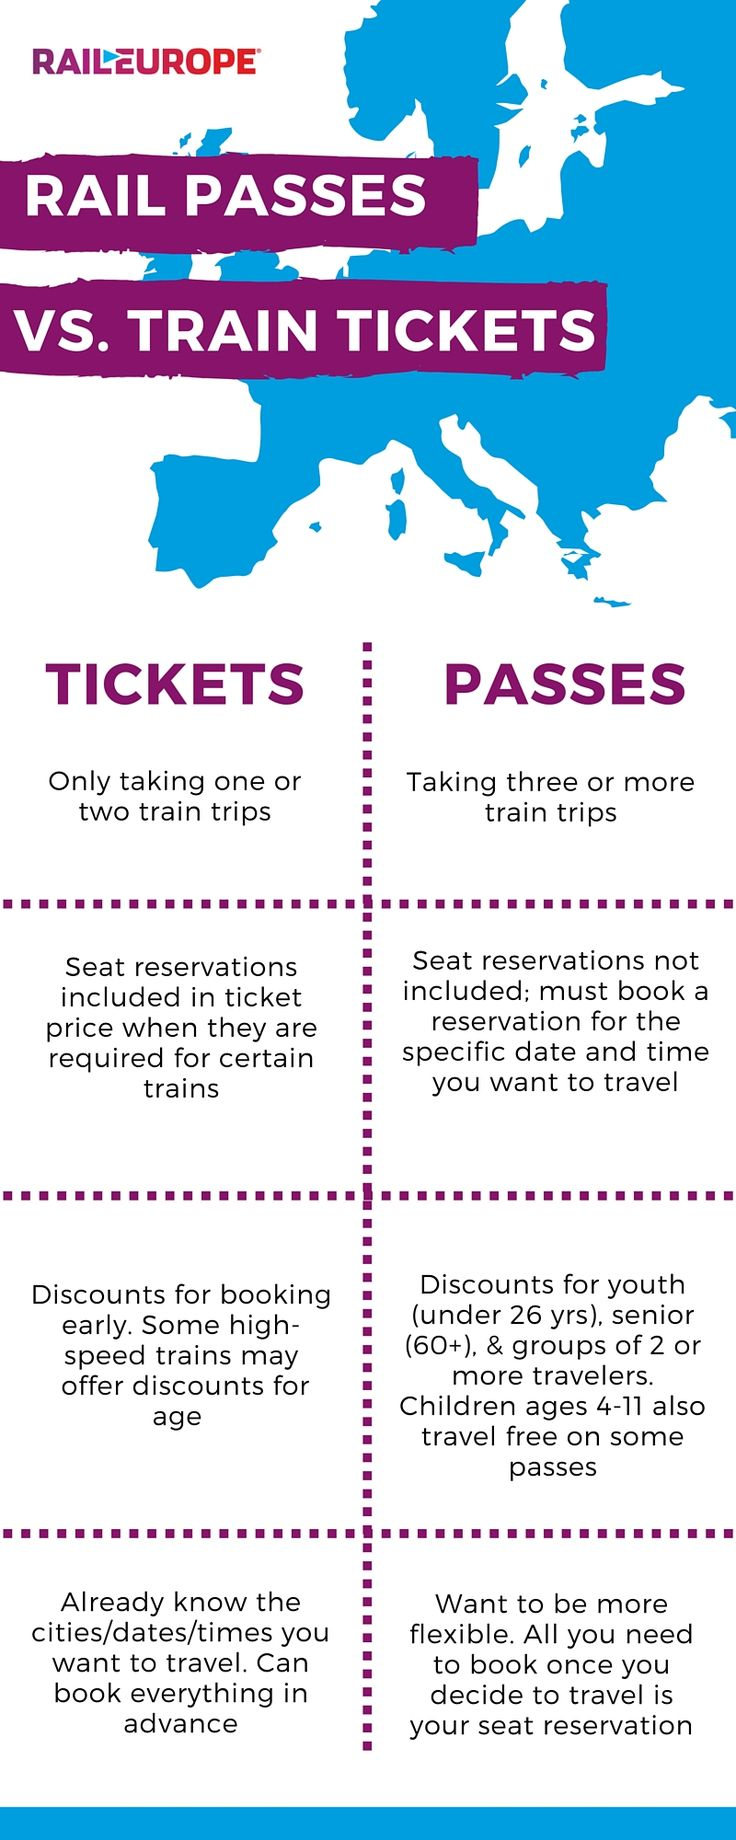 How do you know if you should book train tickets or a rail pass? Either option can be budget-friendly depending on your particular train itinerary.